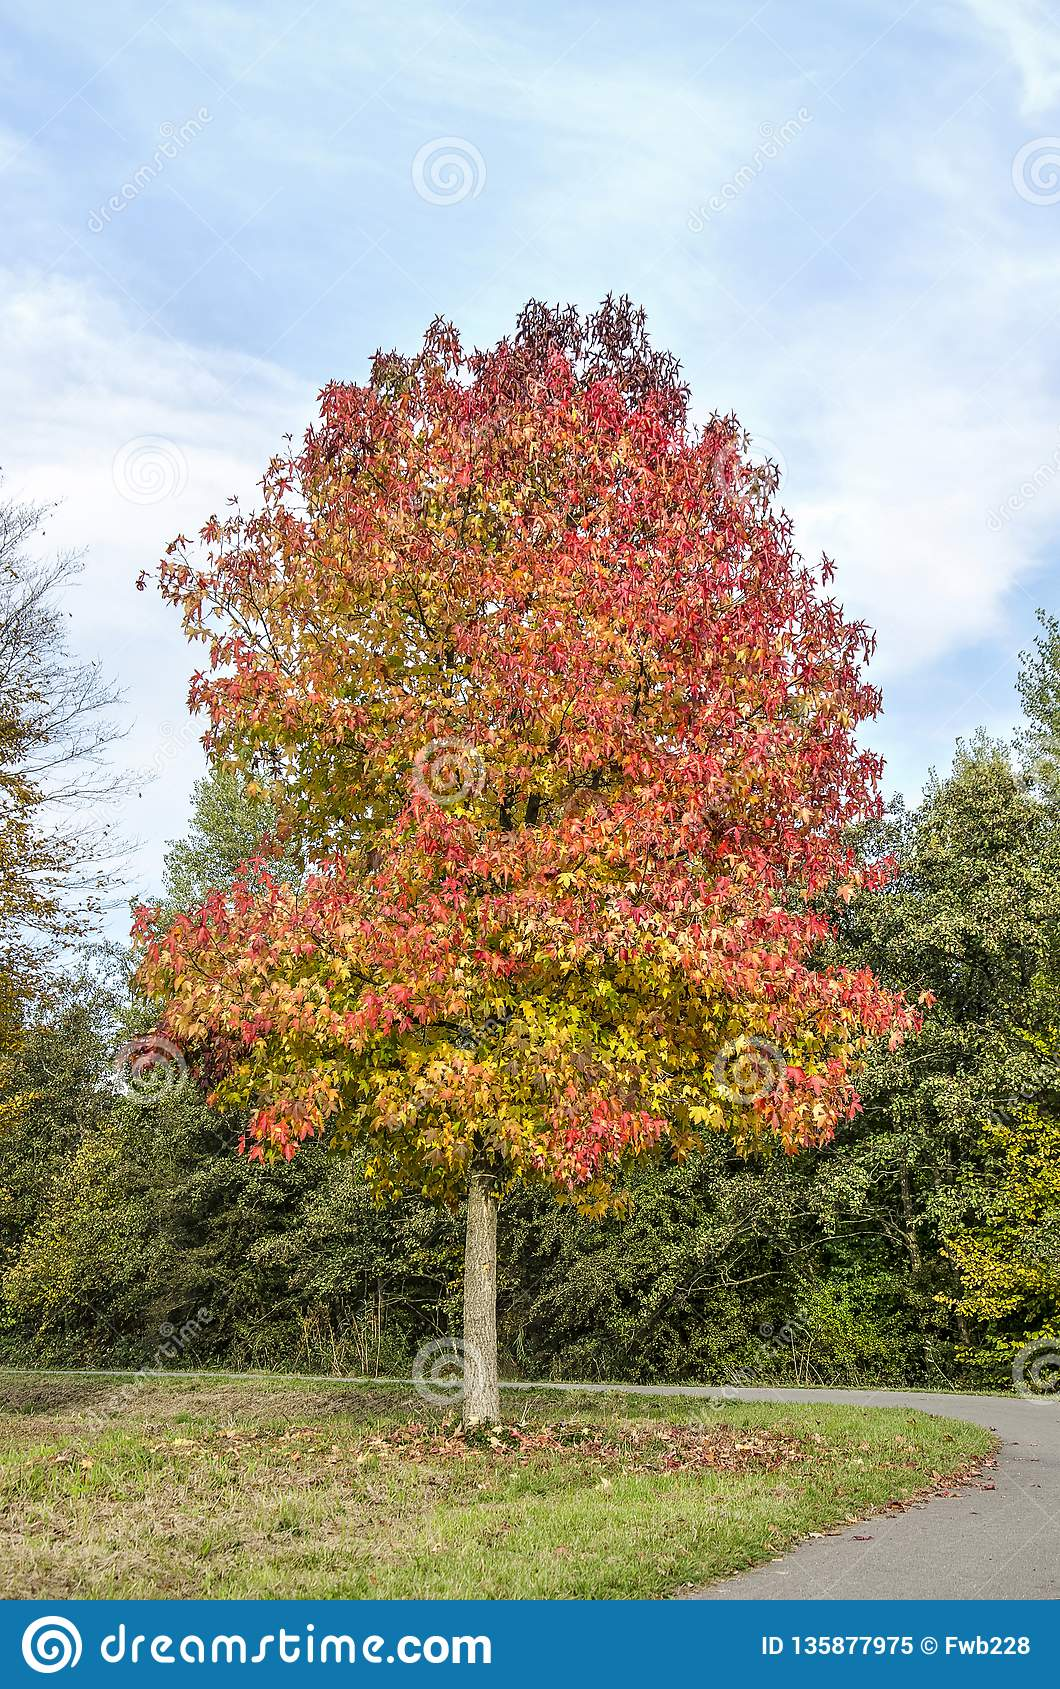 Sweet Gum Tree In A Curve Of The Road Stock Image Image Of Europe Fall 135877975